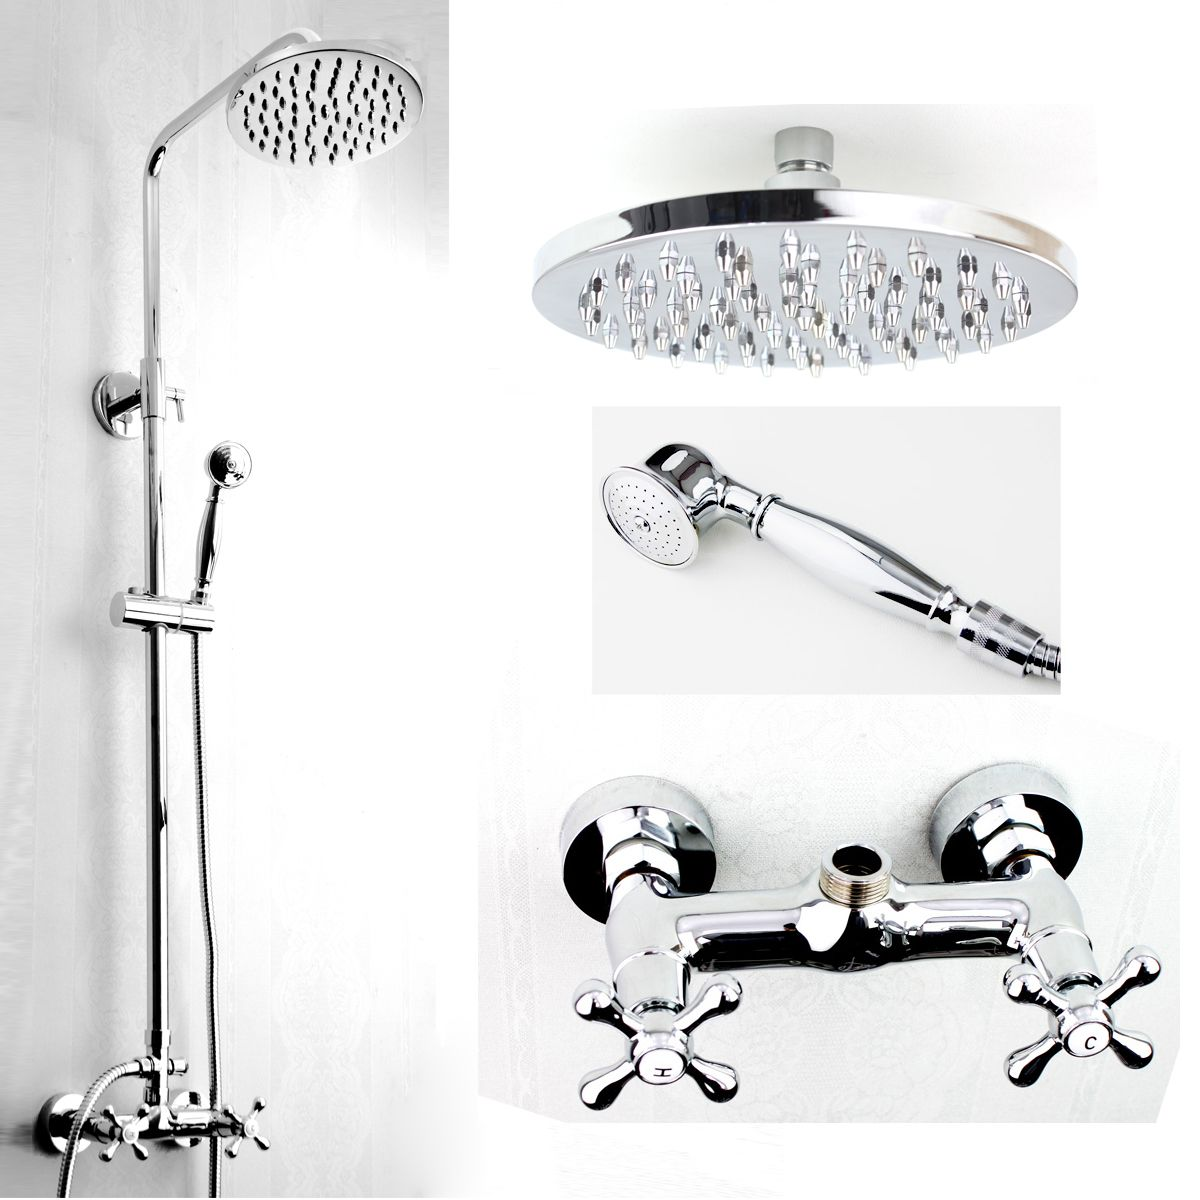 Two Handles Wall Mounted Rain Shower Faucet Mixer Valve Set Yl04